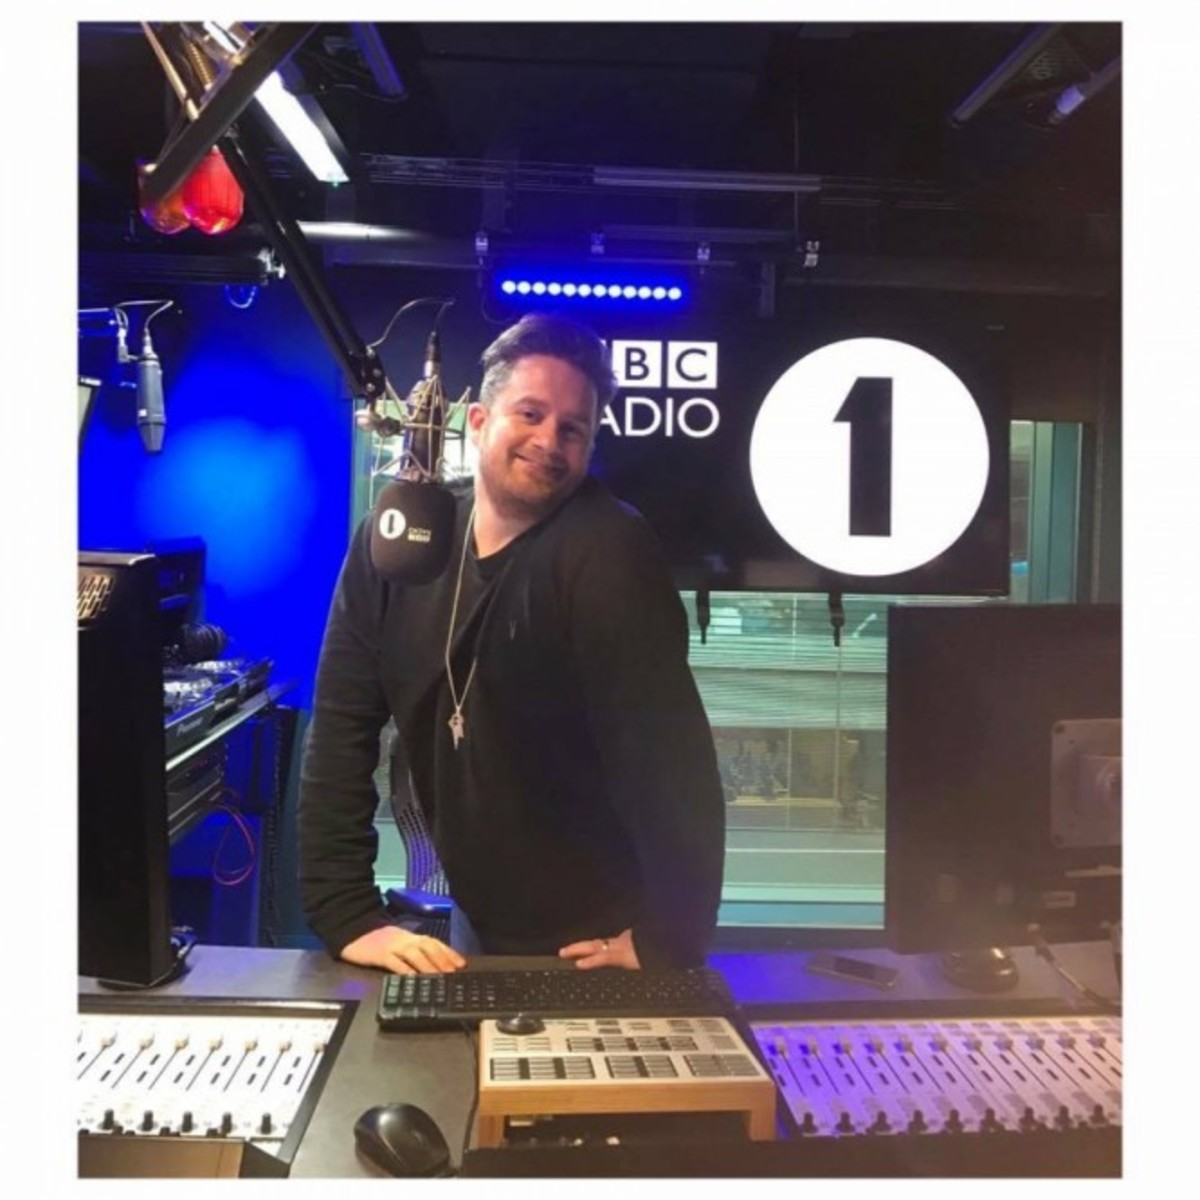 Eats Everything at BBC Radio 1